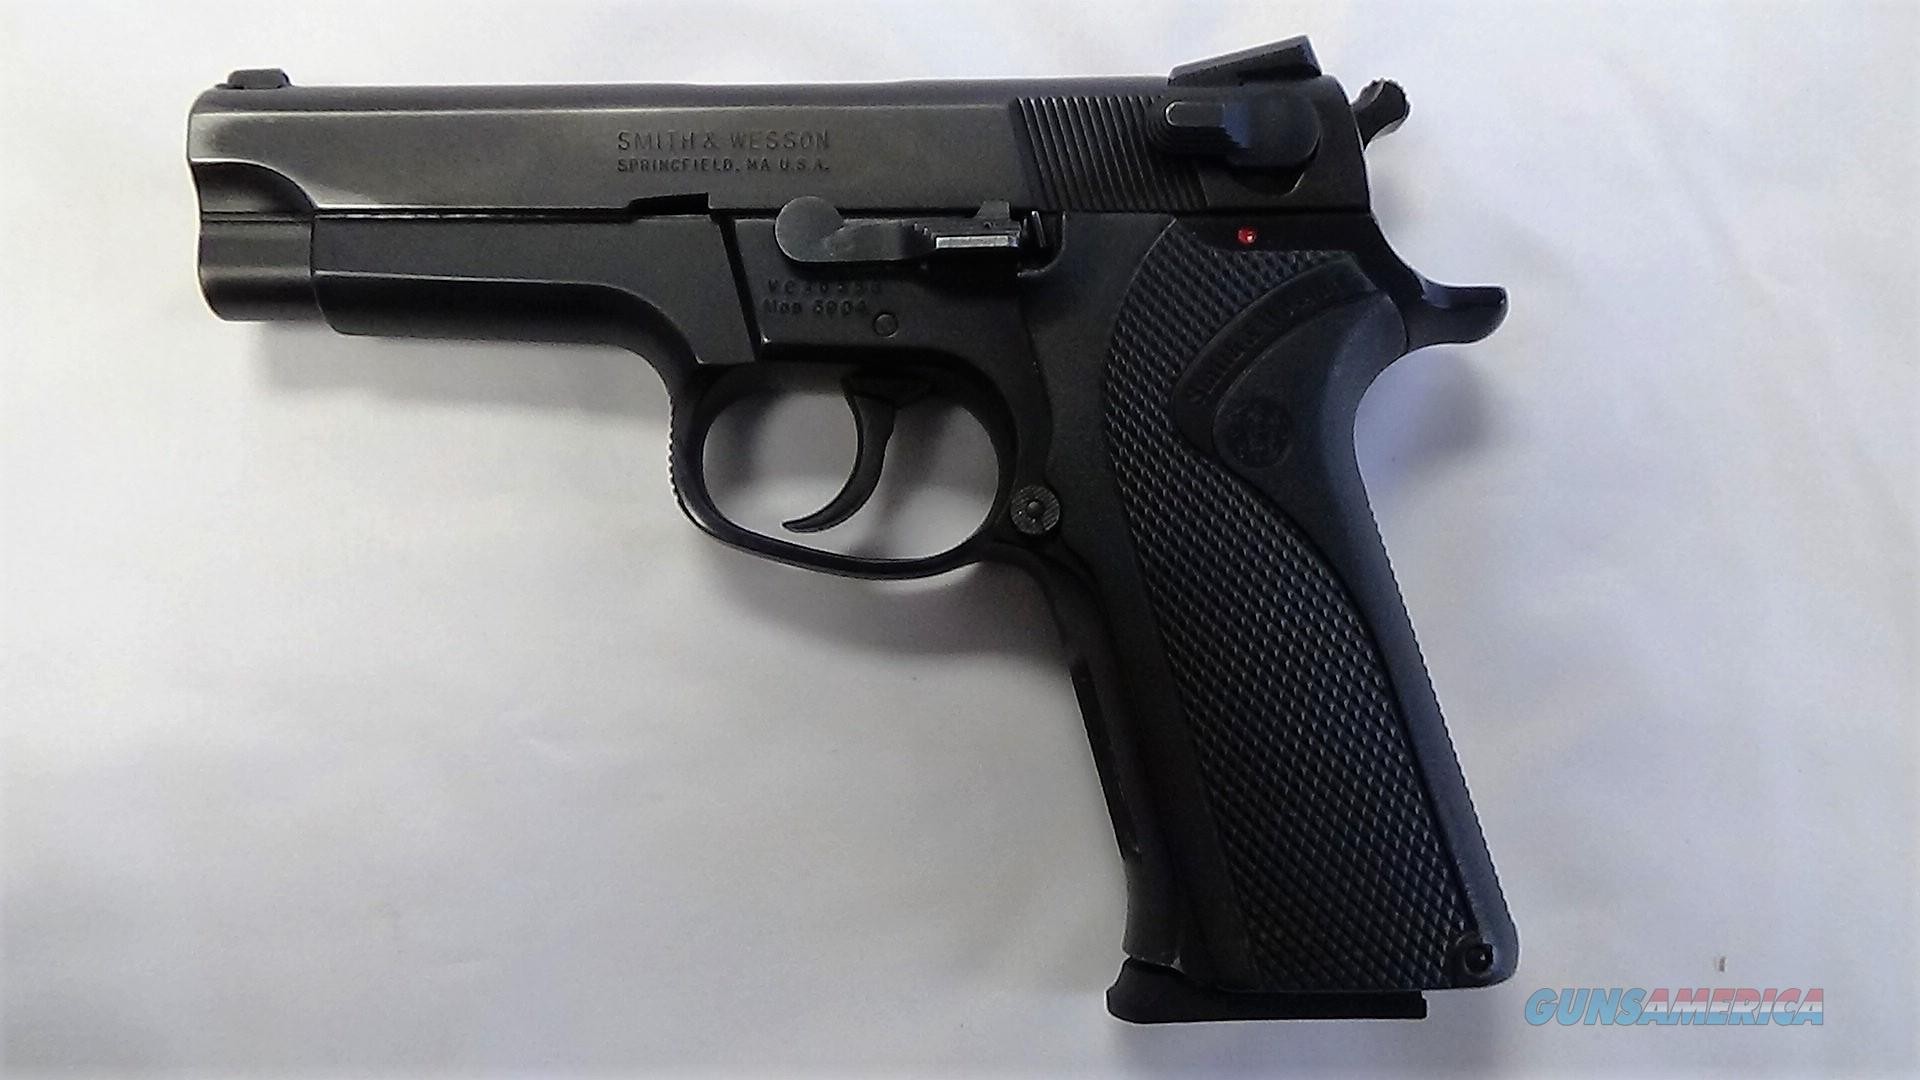 Used Smith & Wesson 5904 9MM 15RD  Guns > Pistols > Smith & Wesson Pistols - Autos > Steel Frame